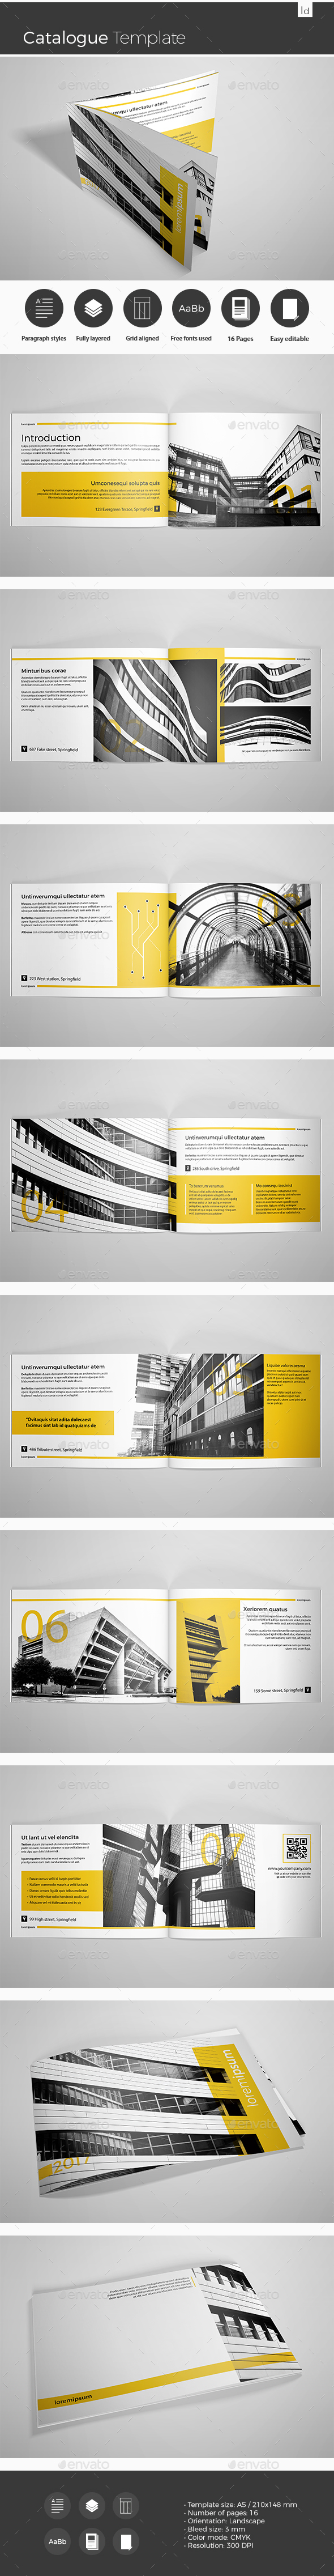 Catalogue Template - Catalogs Brochures